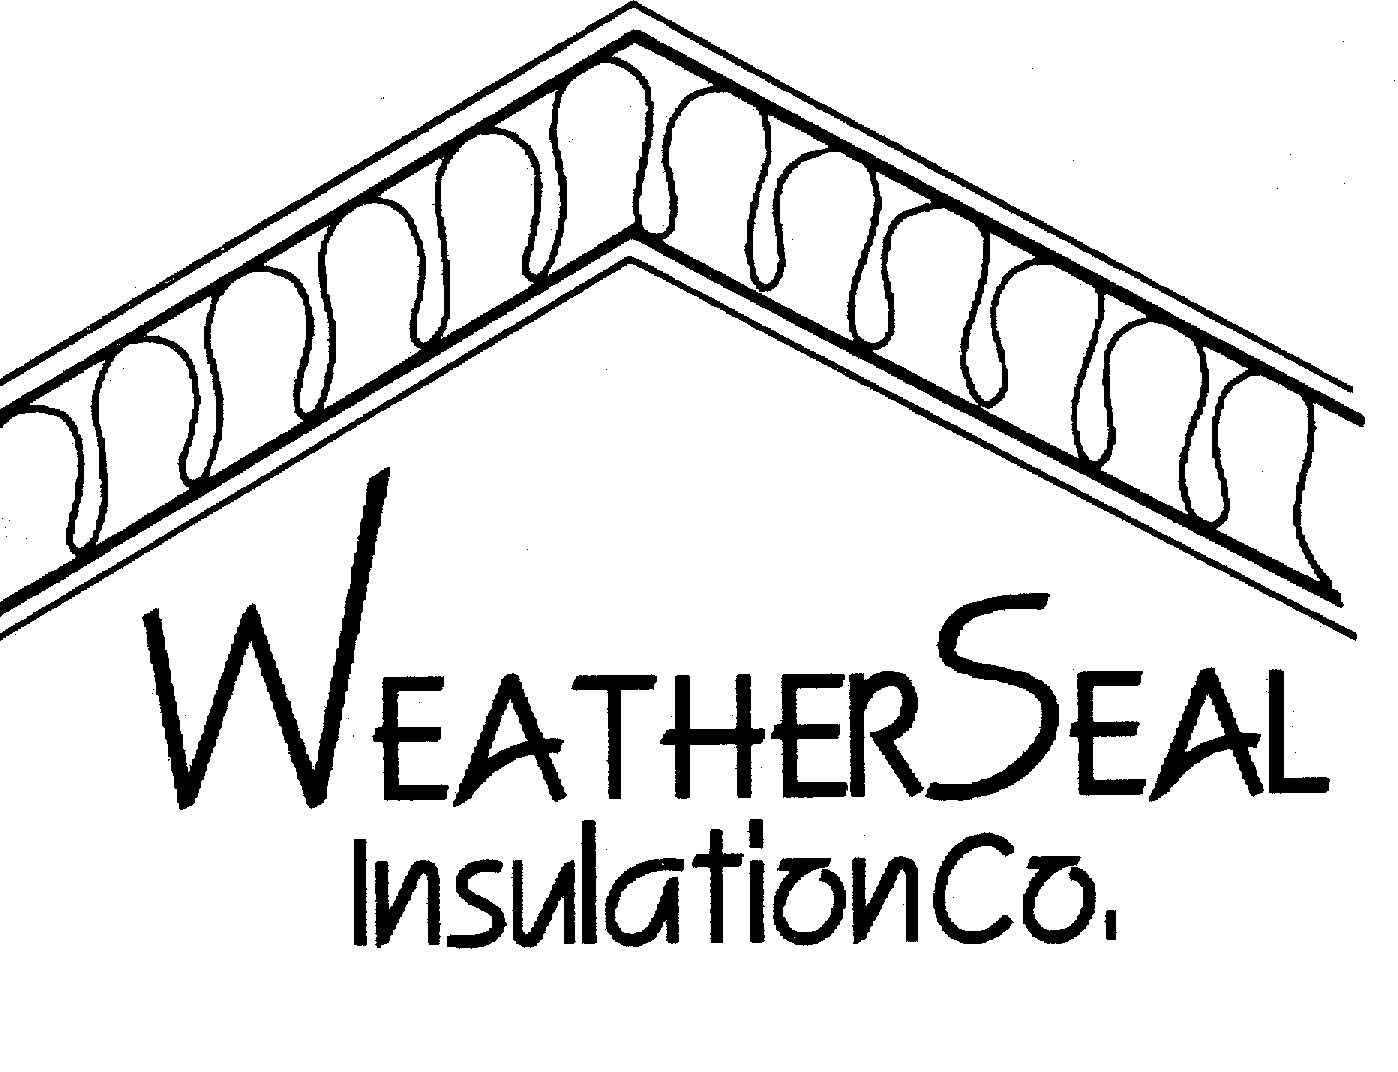 WEATHER SEAL LOGO